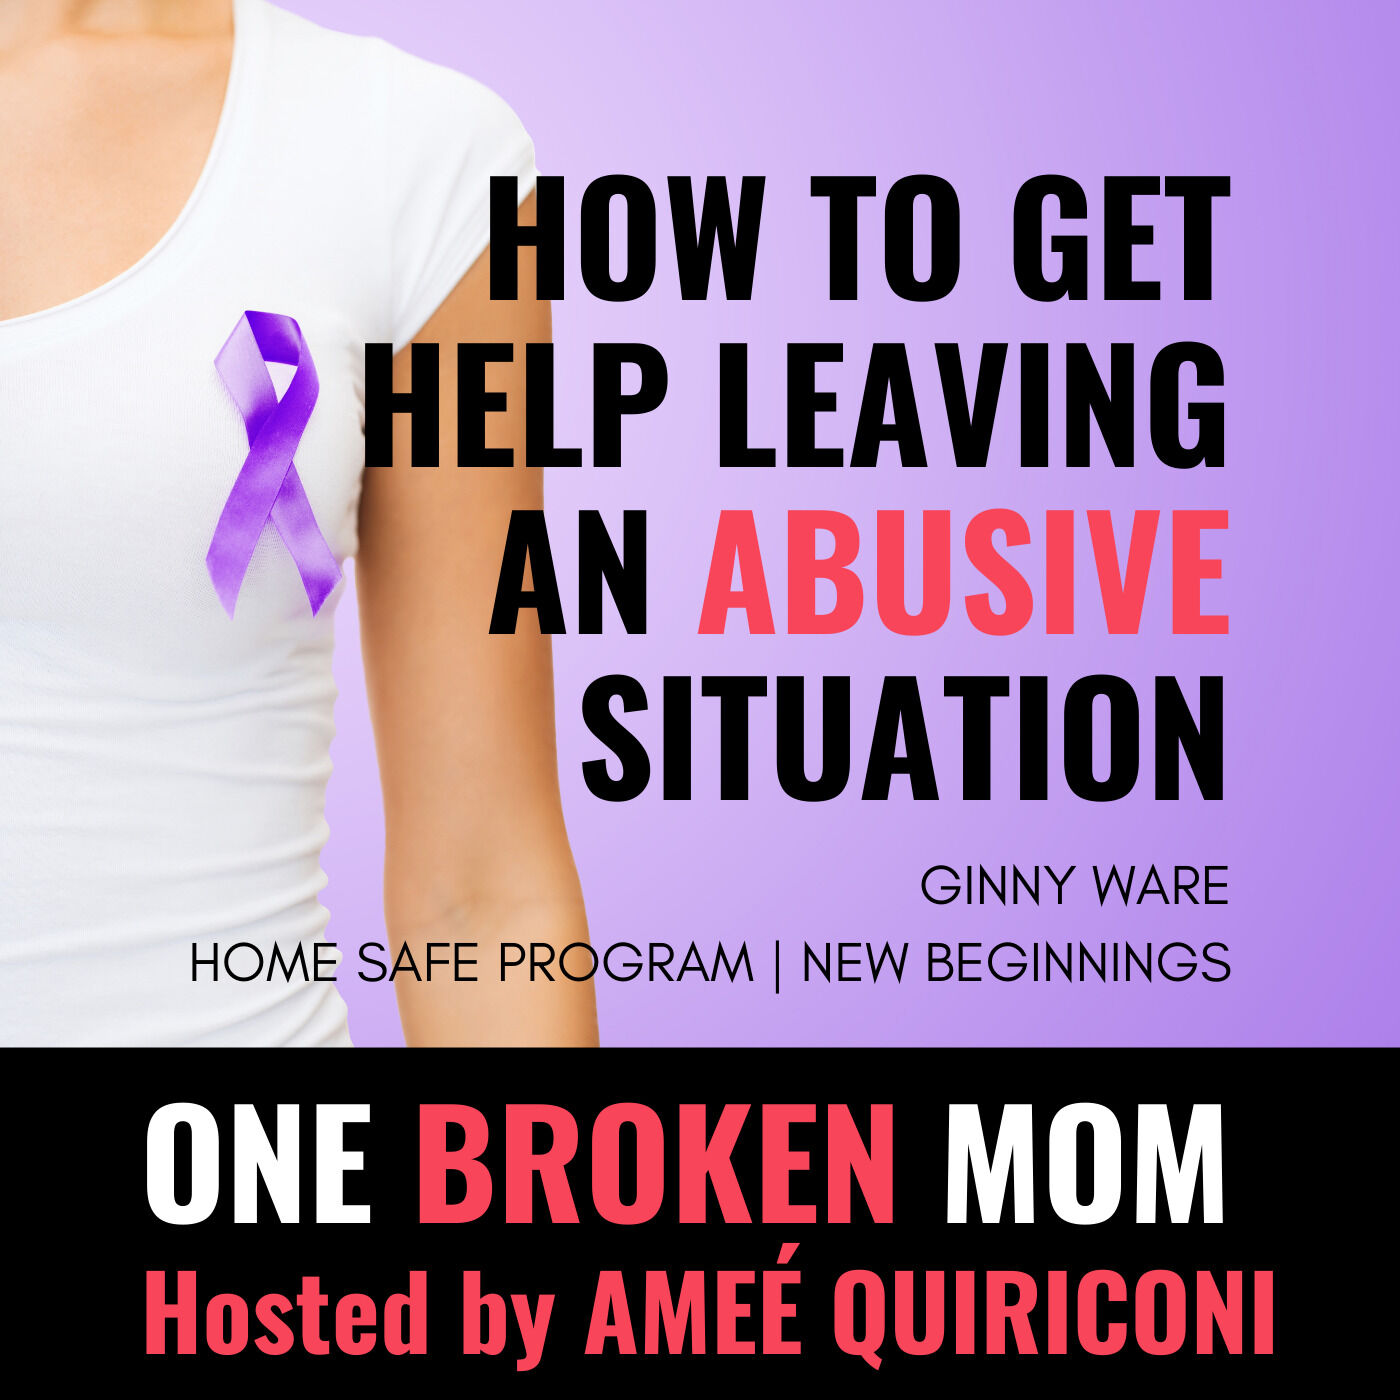 How To Get Help Leaving an Abusive Situation